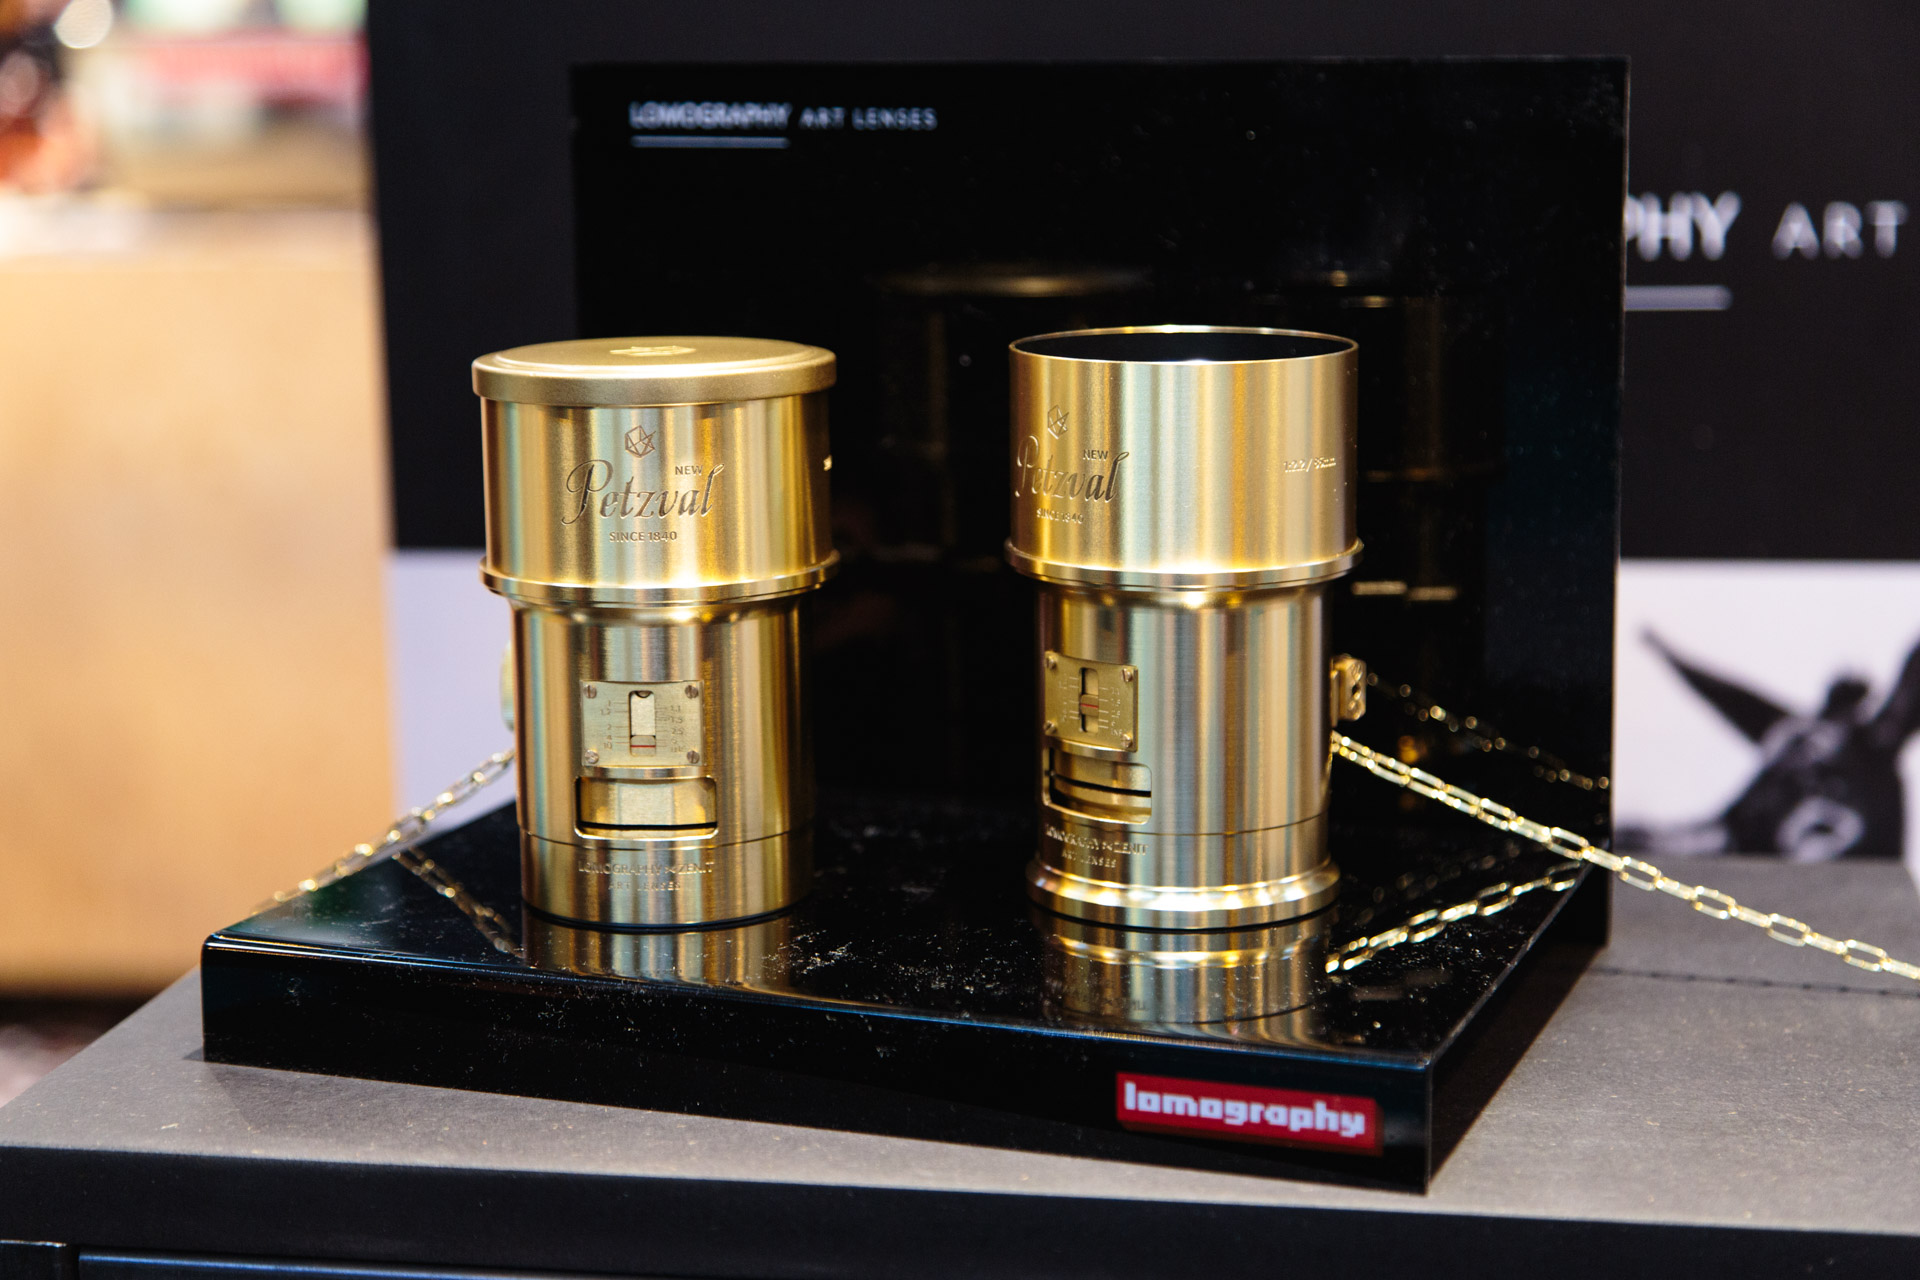 Lomography's Petzval lens. This lens has a focal length of 85mm (ideal for portraits) and is based on old technology by Joseph Petzval from 1840. These mount Nikon (left) and Canon (right) DSLRs.